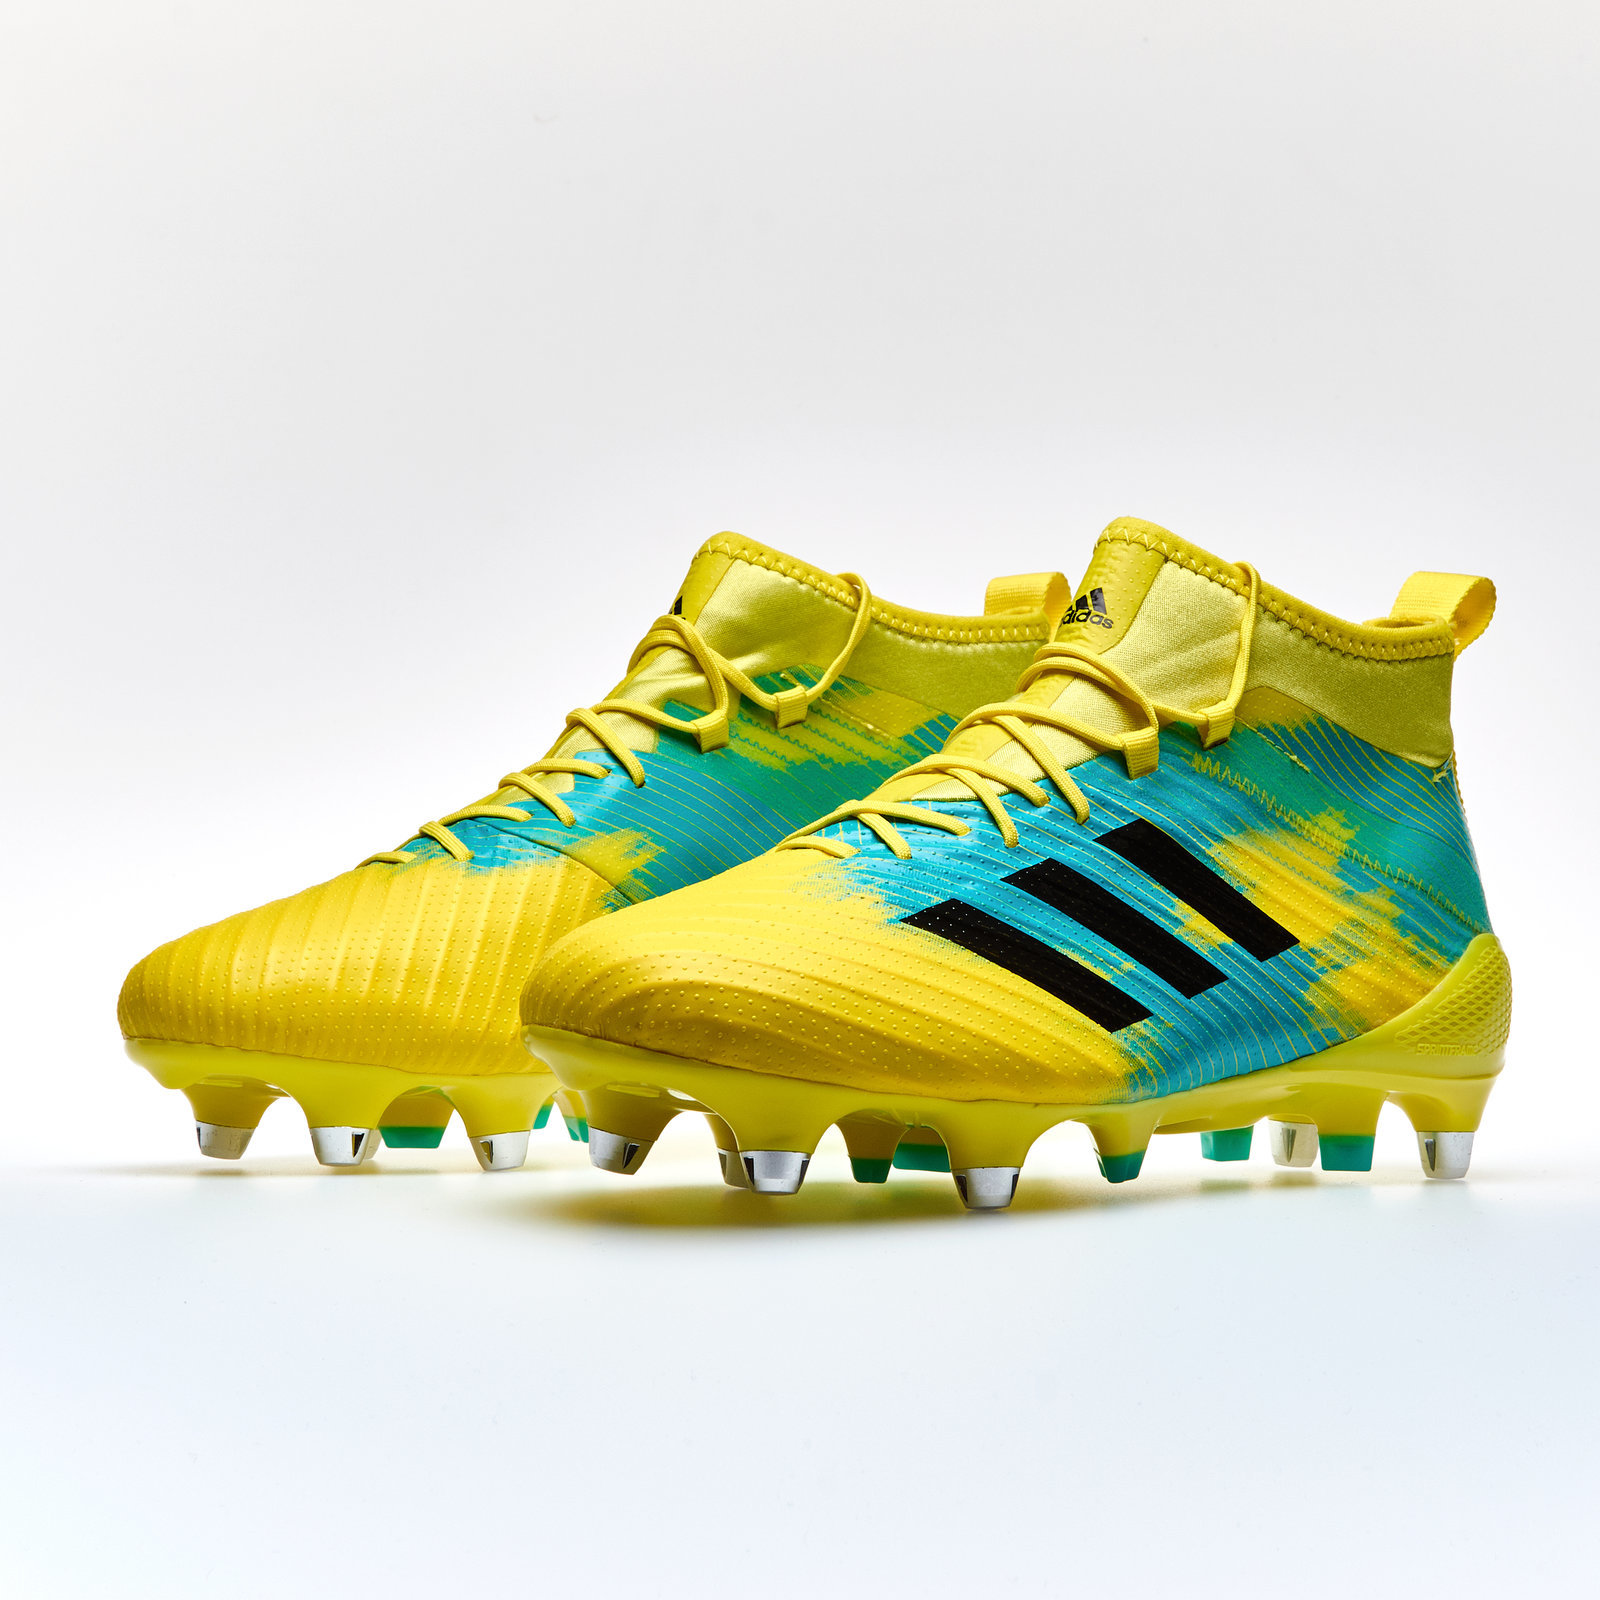 4a2d9d34174a Details about Predator Flare SG Rugby Boots Training Sports Footwear  Trainers